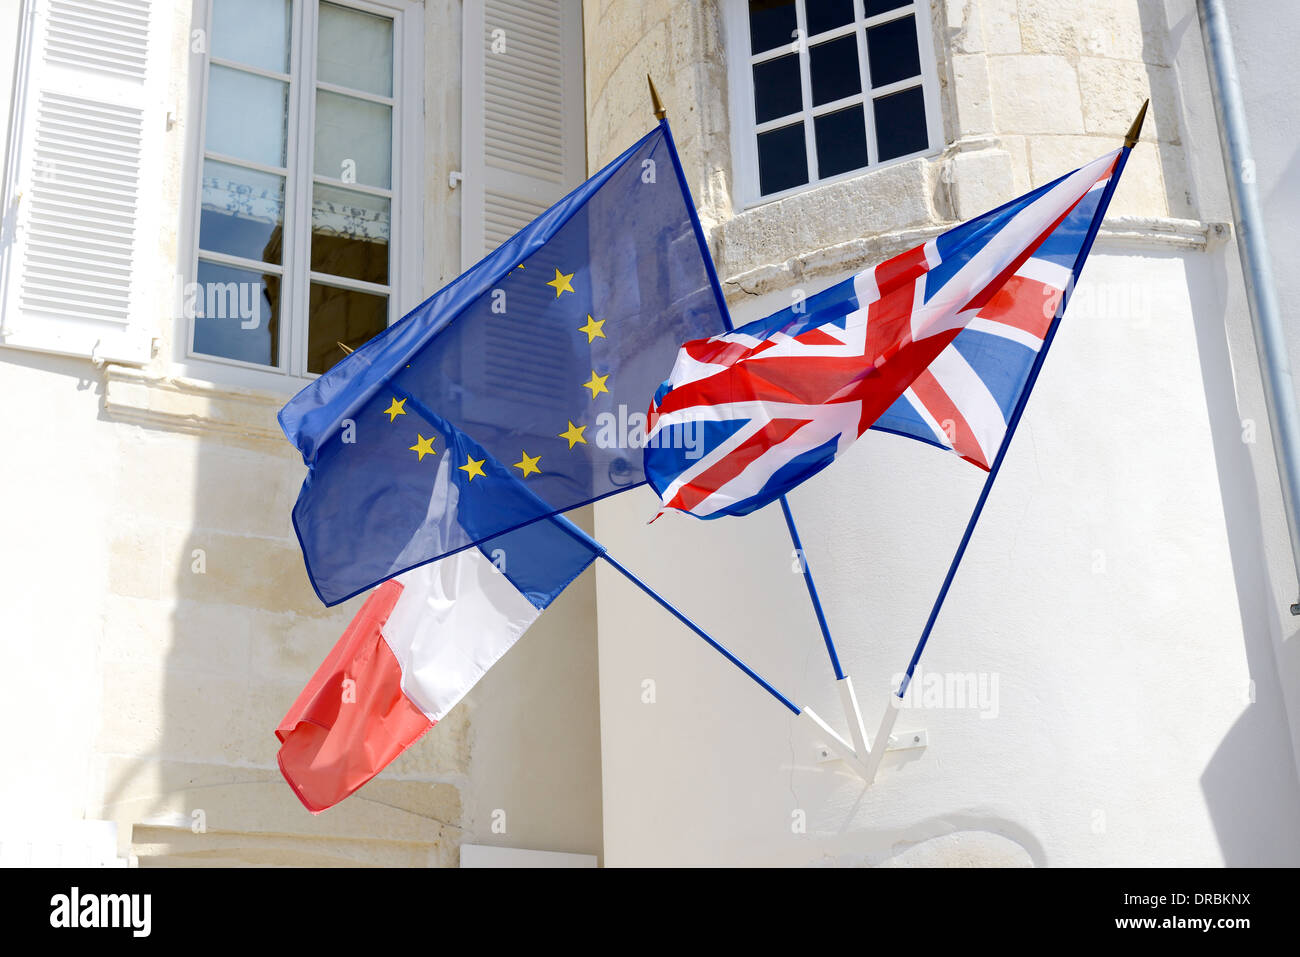 three flags fly together unity of france and england throught the european union Stock Photo